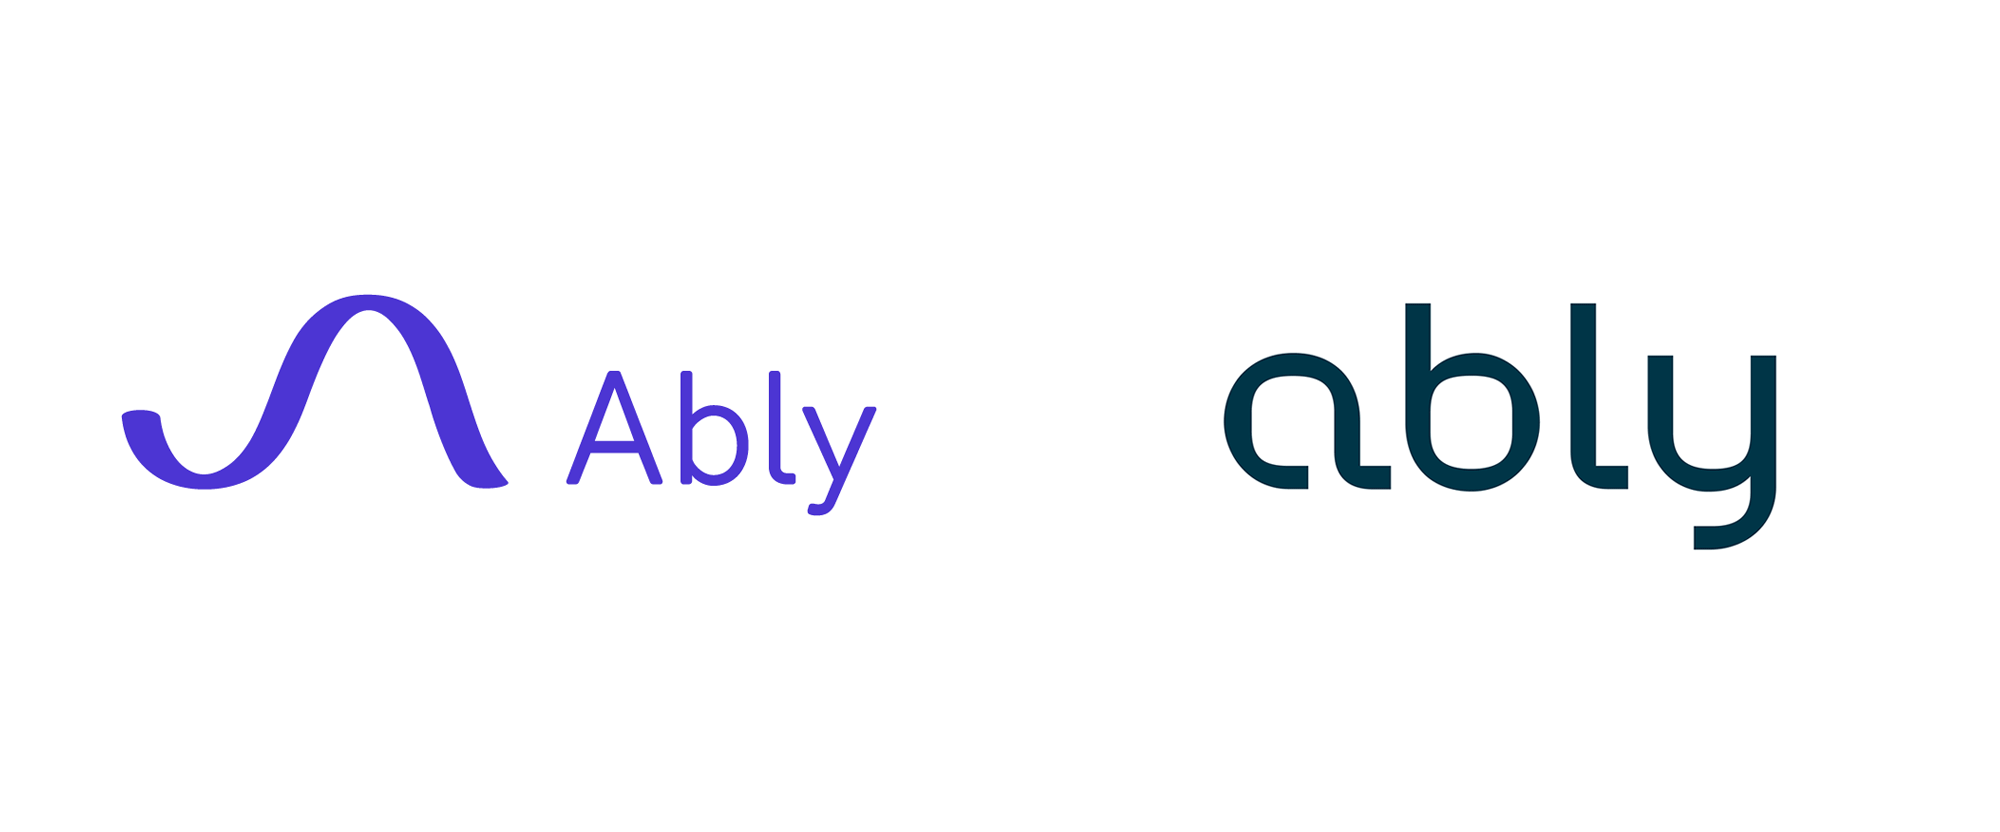 New Logo and Identity for Ably by Heydays